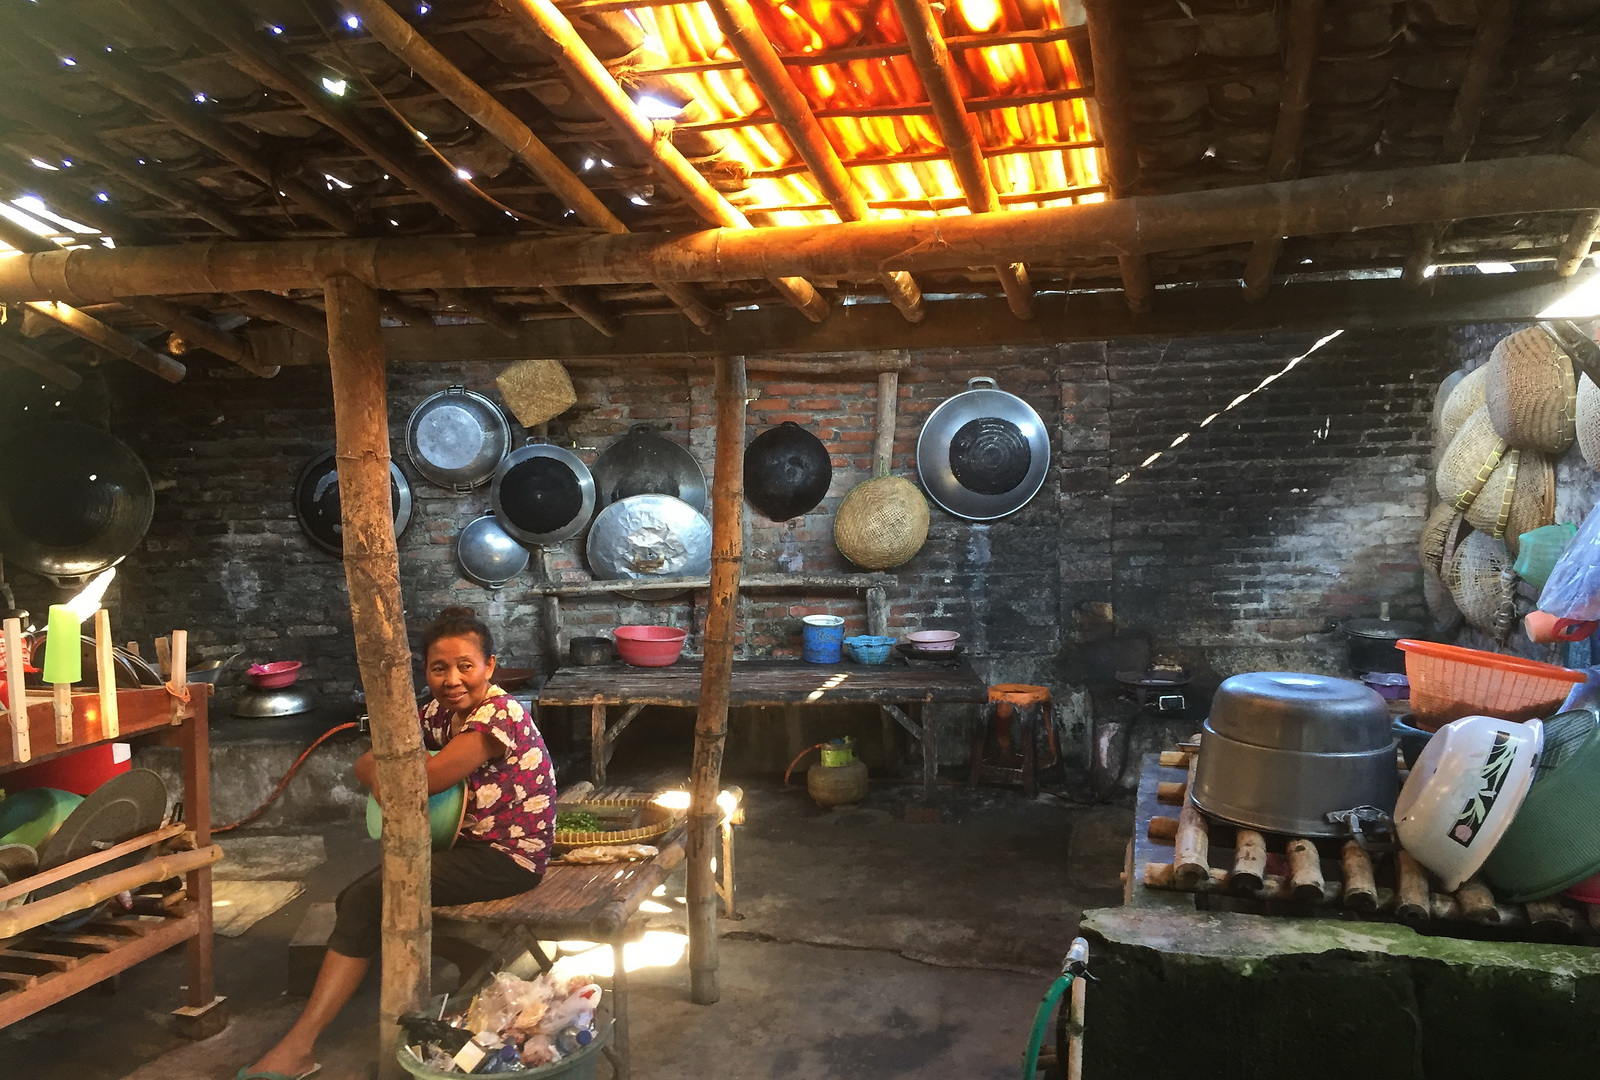 Indonesia. Traditional-style kitchen in a local cafe near Kilabaru